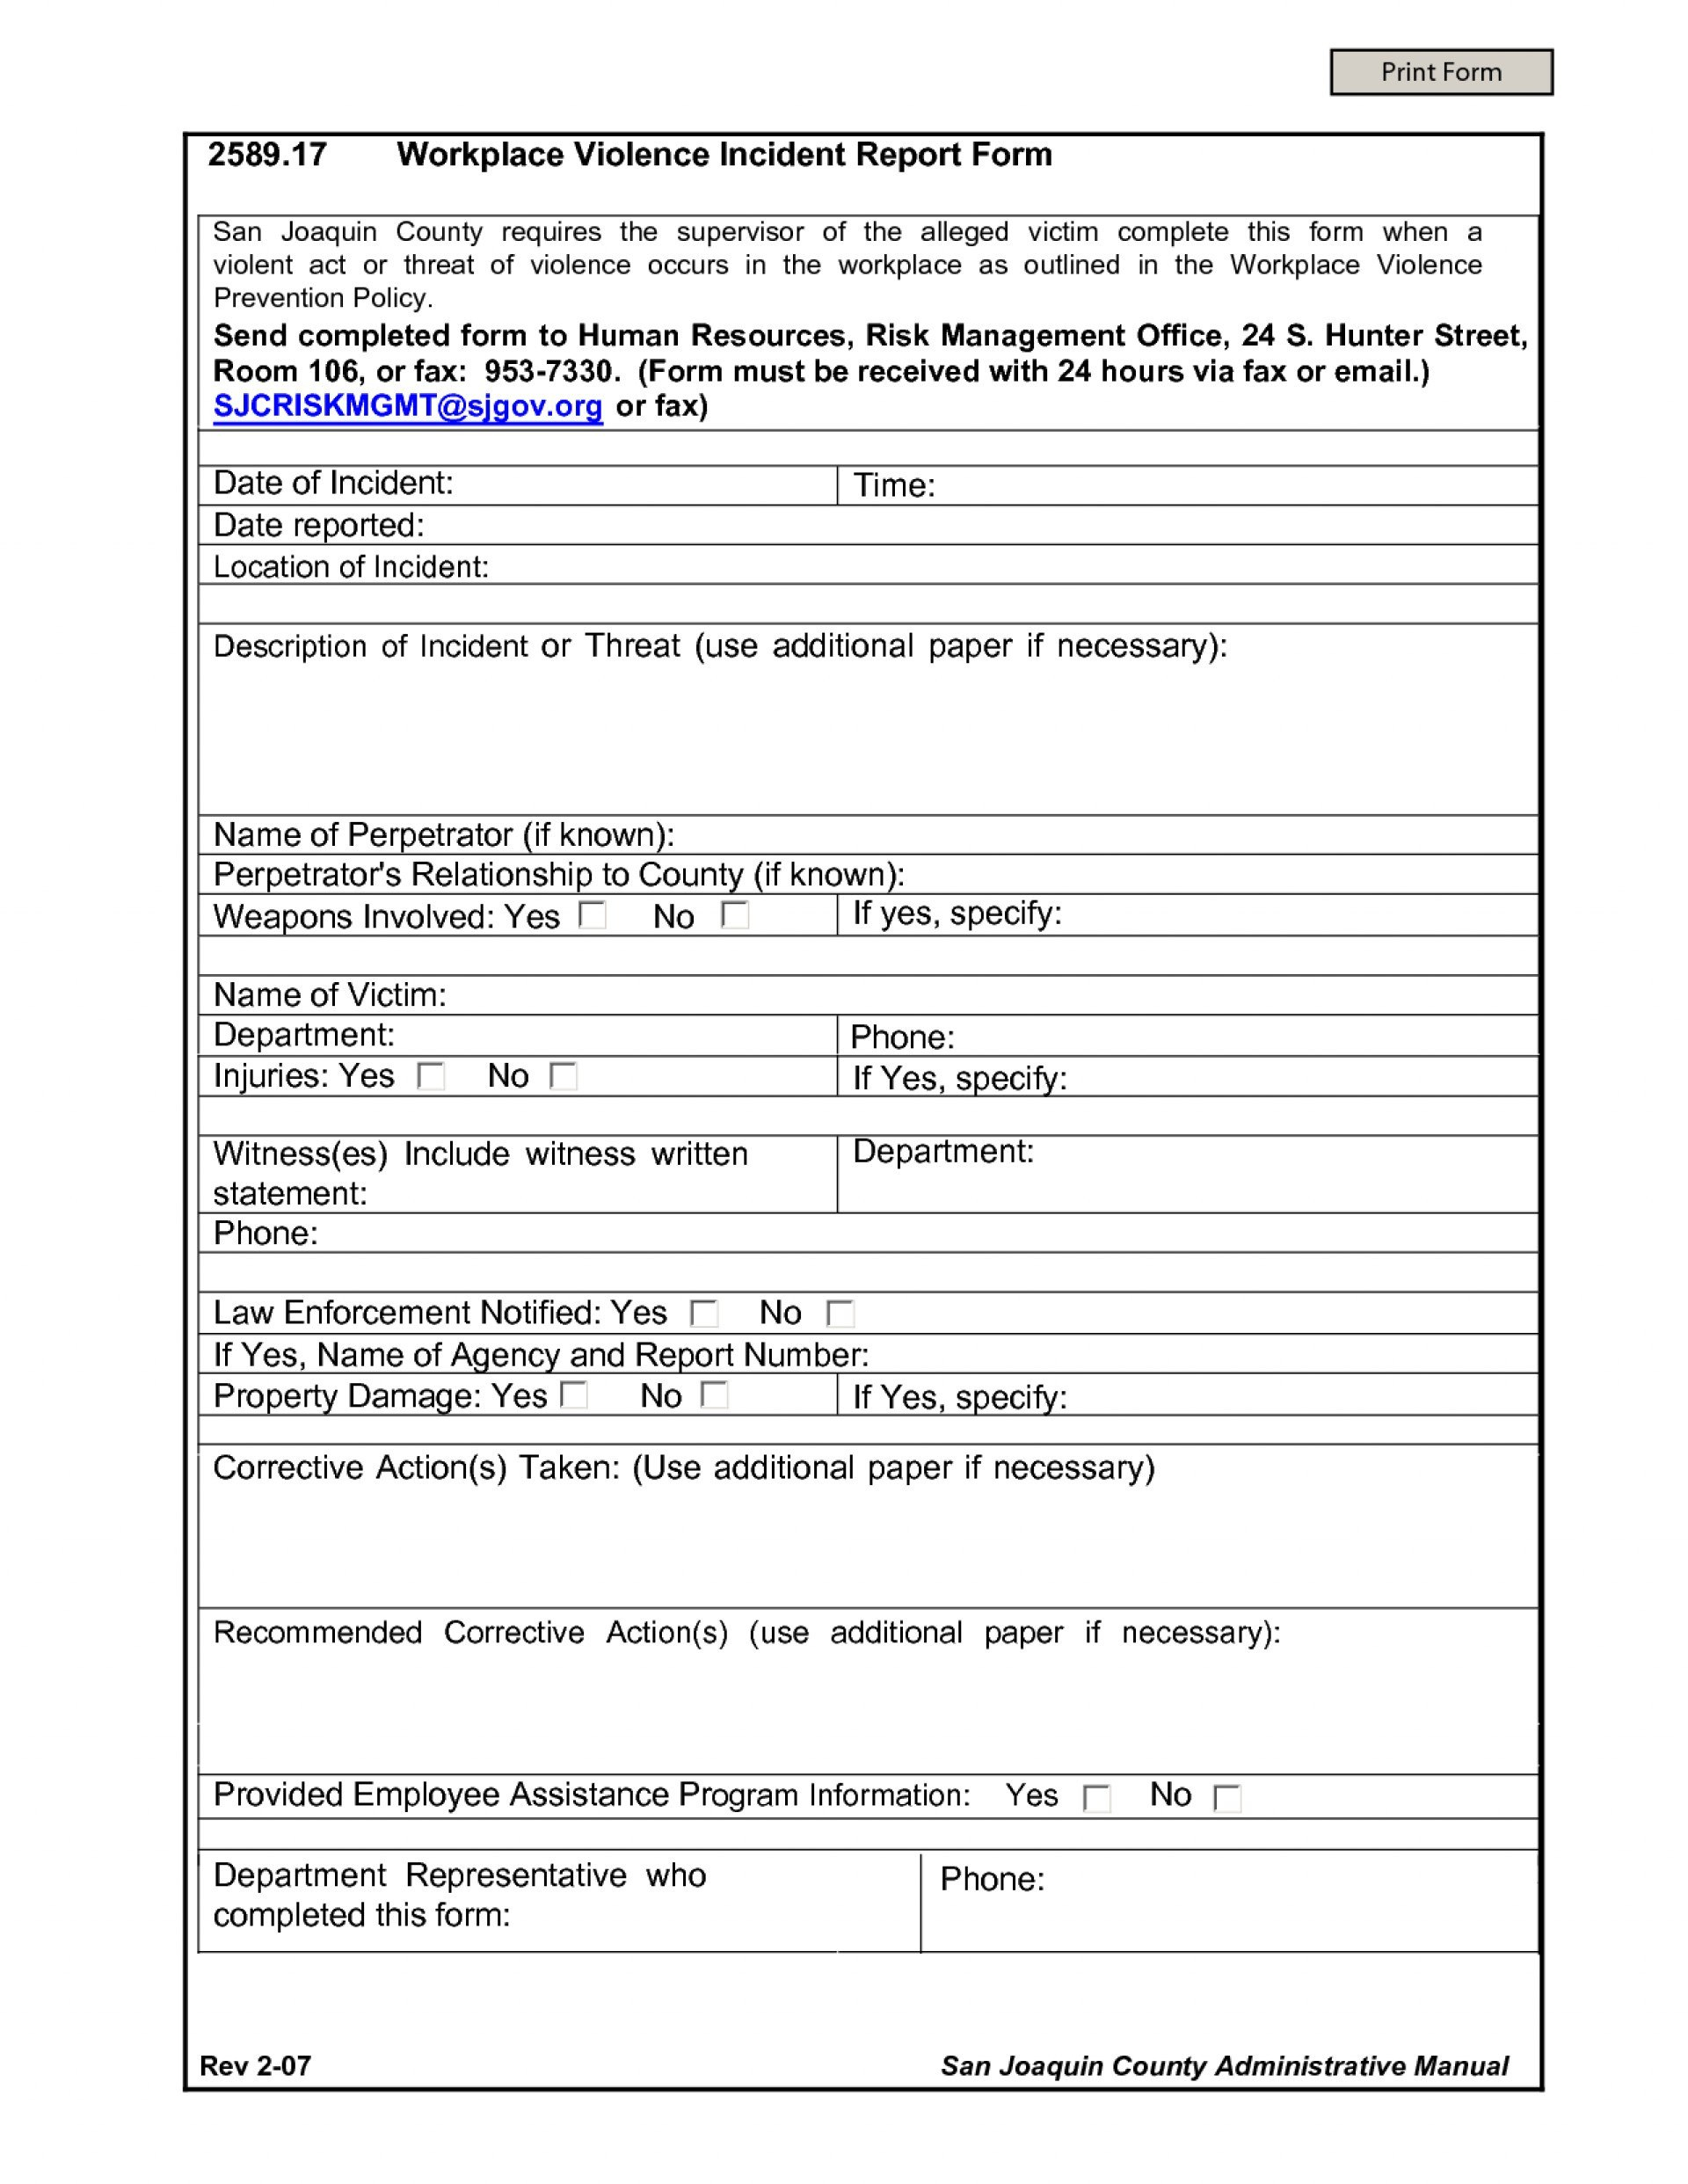 Incident Report Letter Sample In Workplace  Manswikstromse In Incident Report Form Template Qld